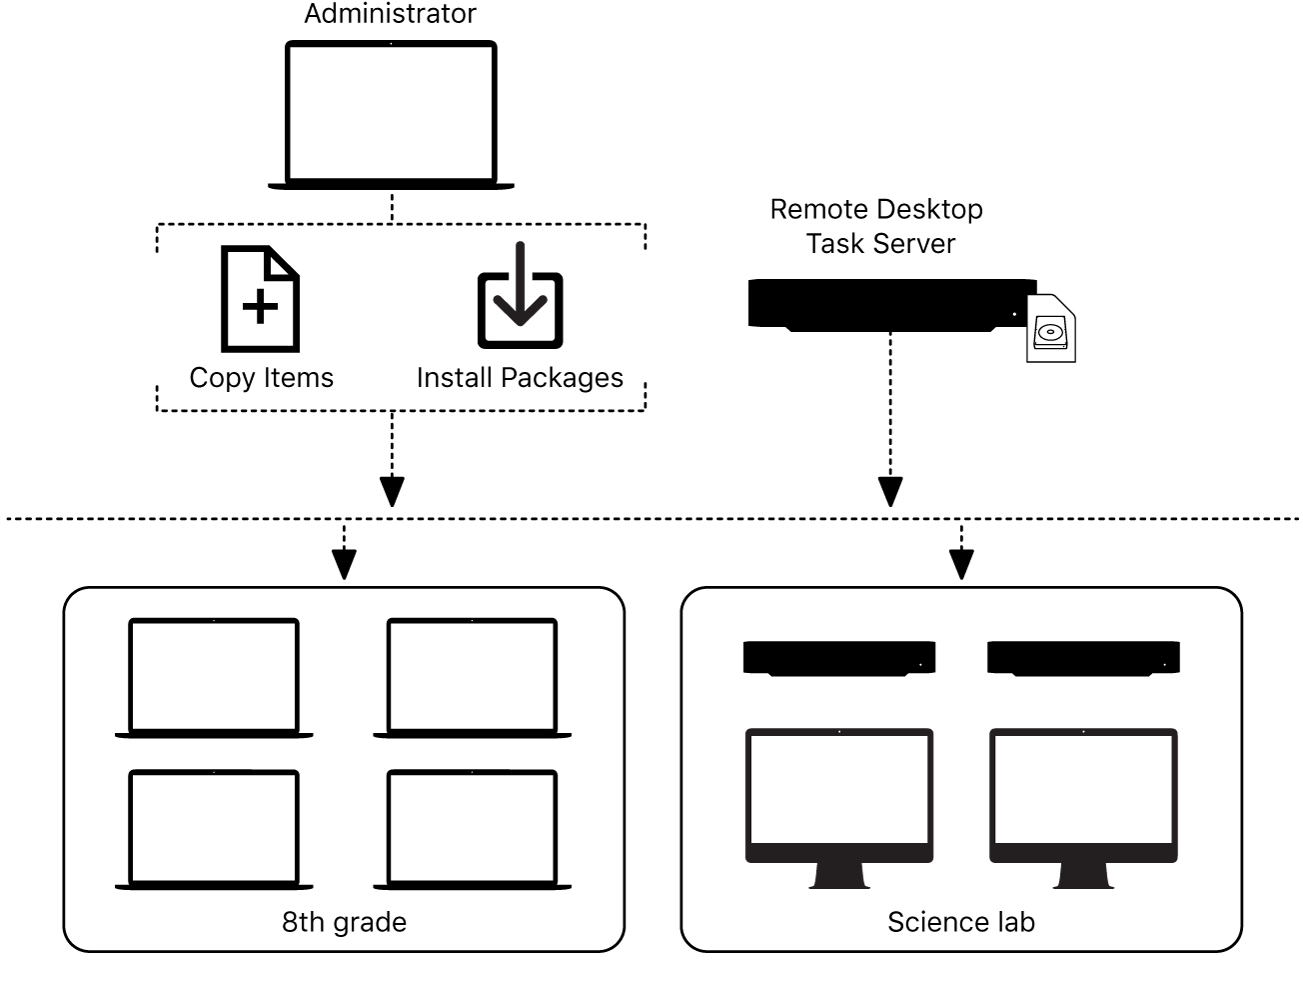 You can copy files or install packages to remote computers with Remote Desktop.